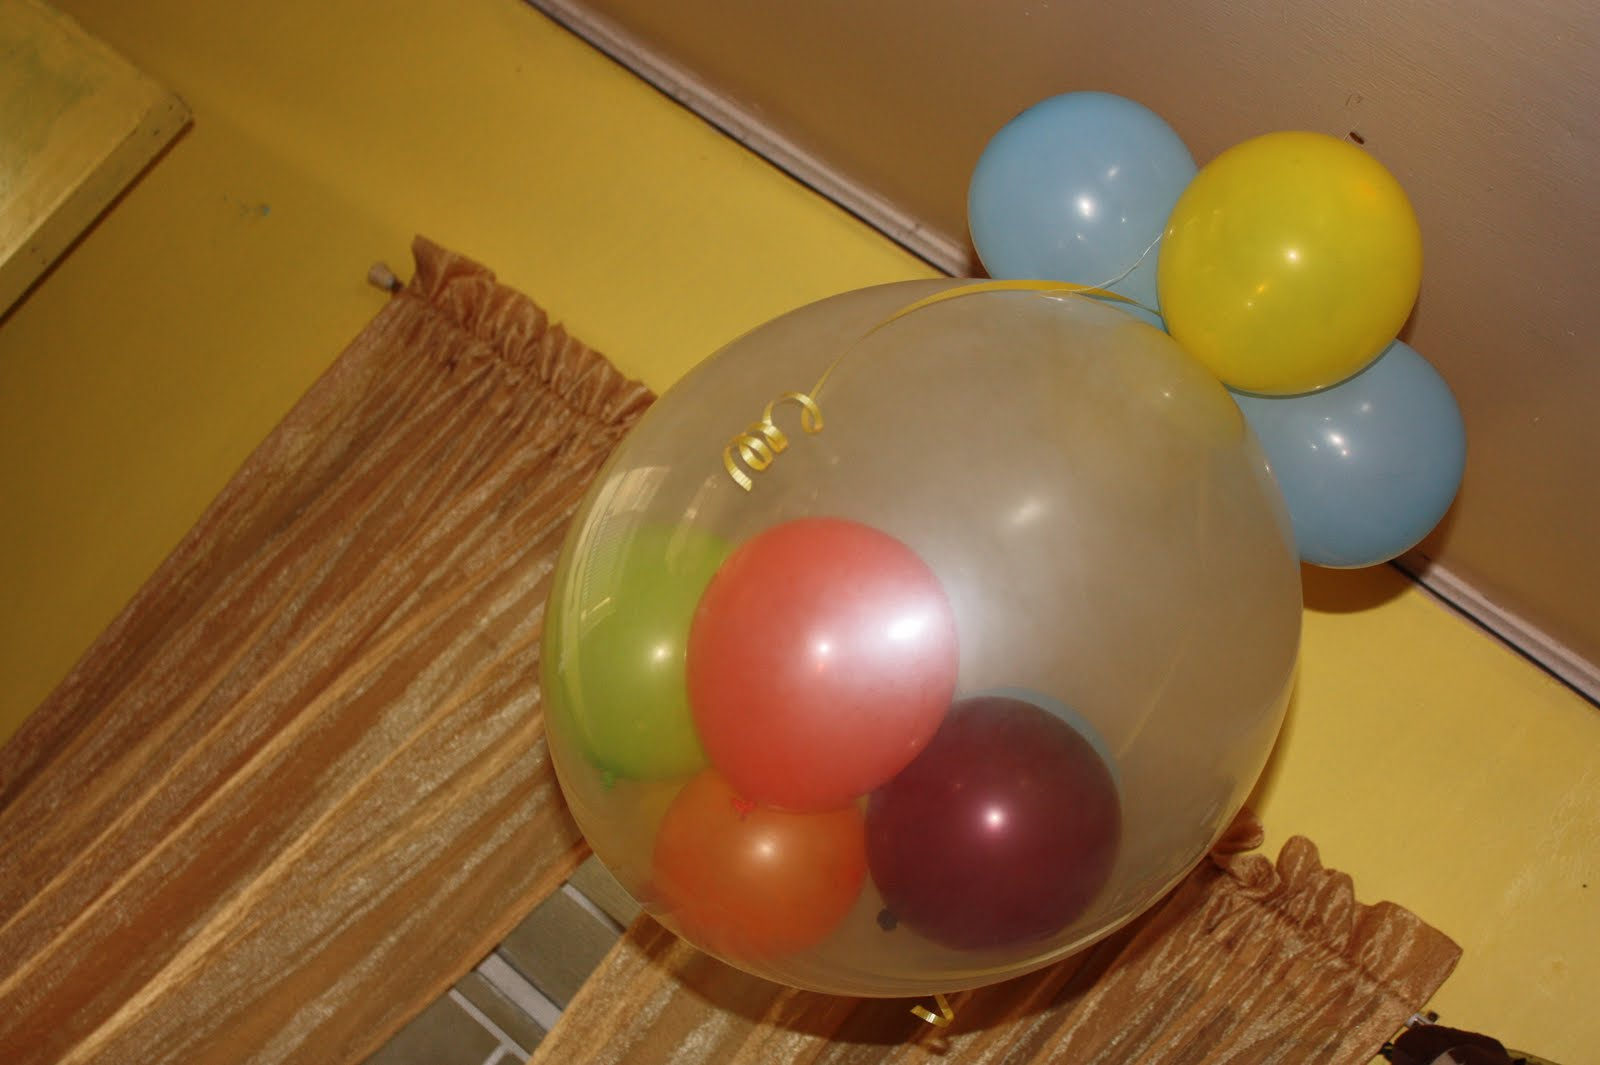 The manic mama my blog for What can you make with balloons